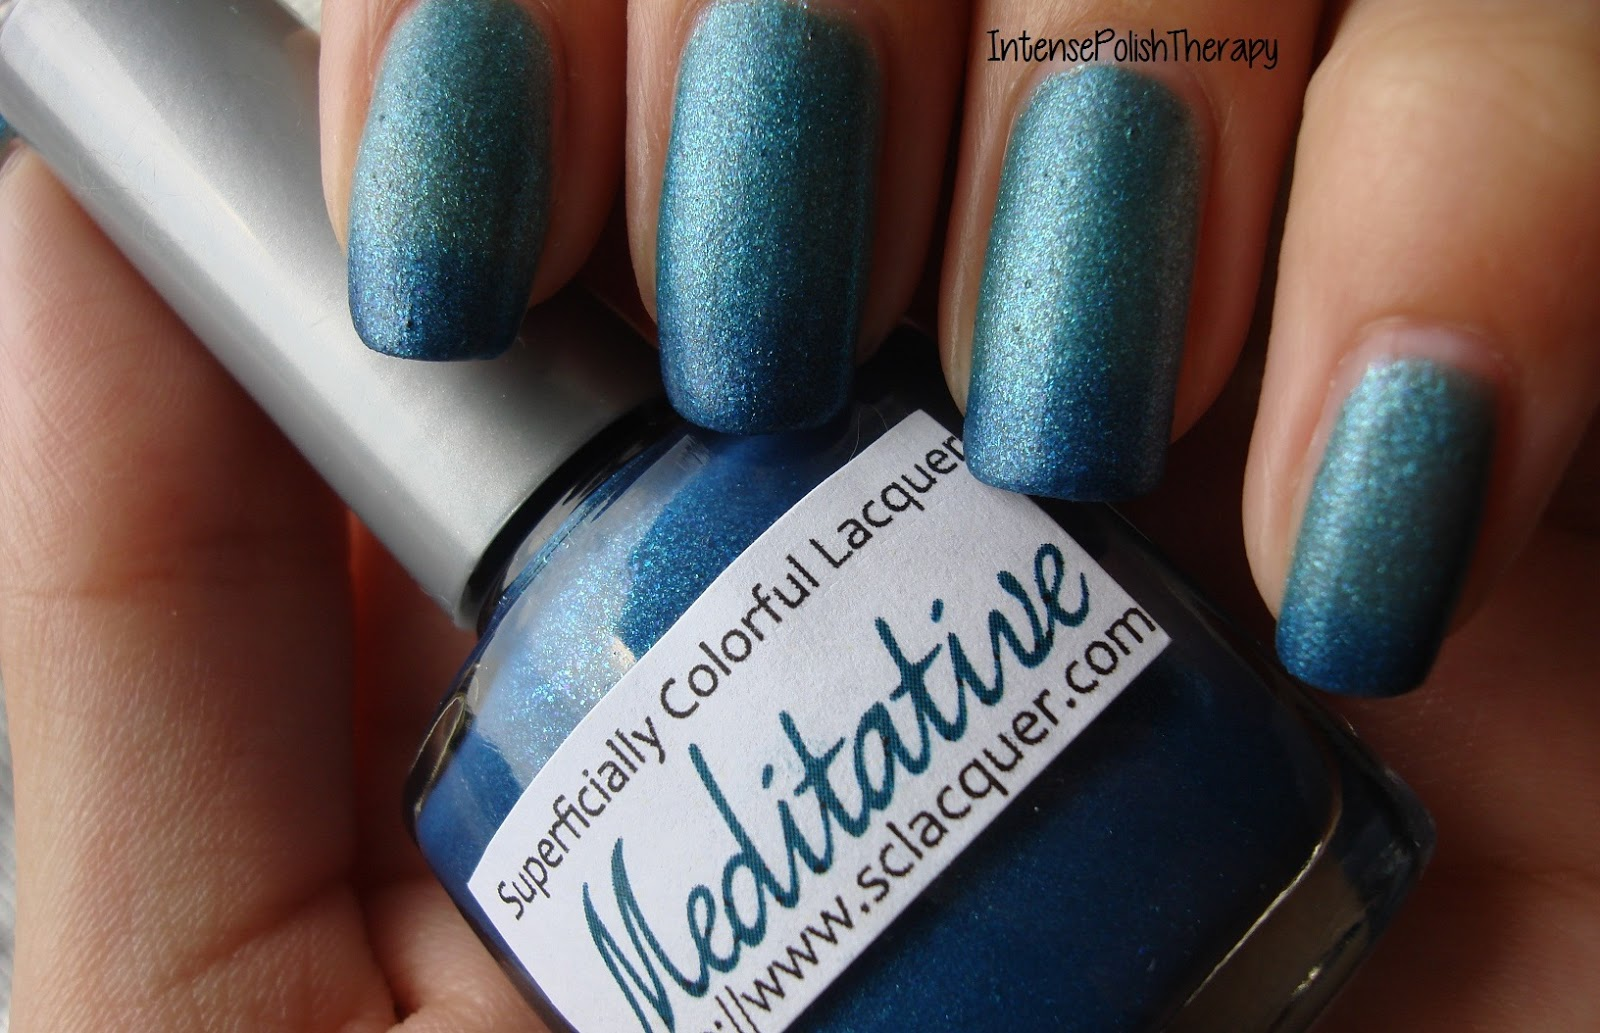 Superficially Colorful Lacquer - Meditative